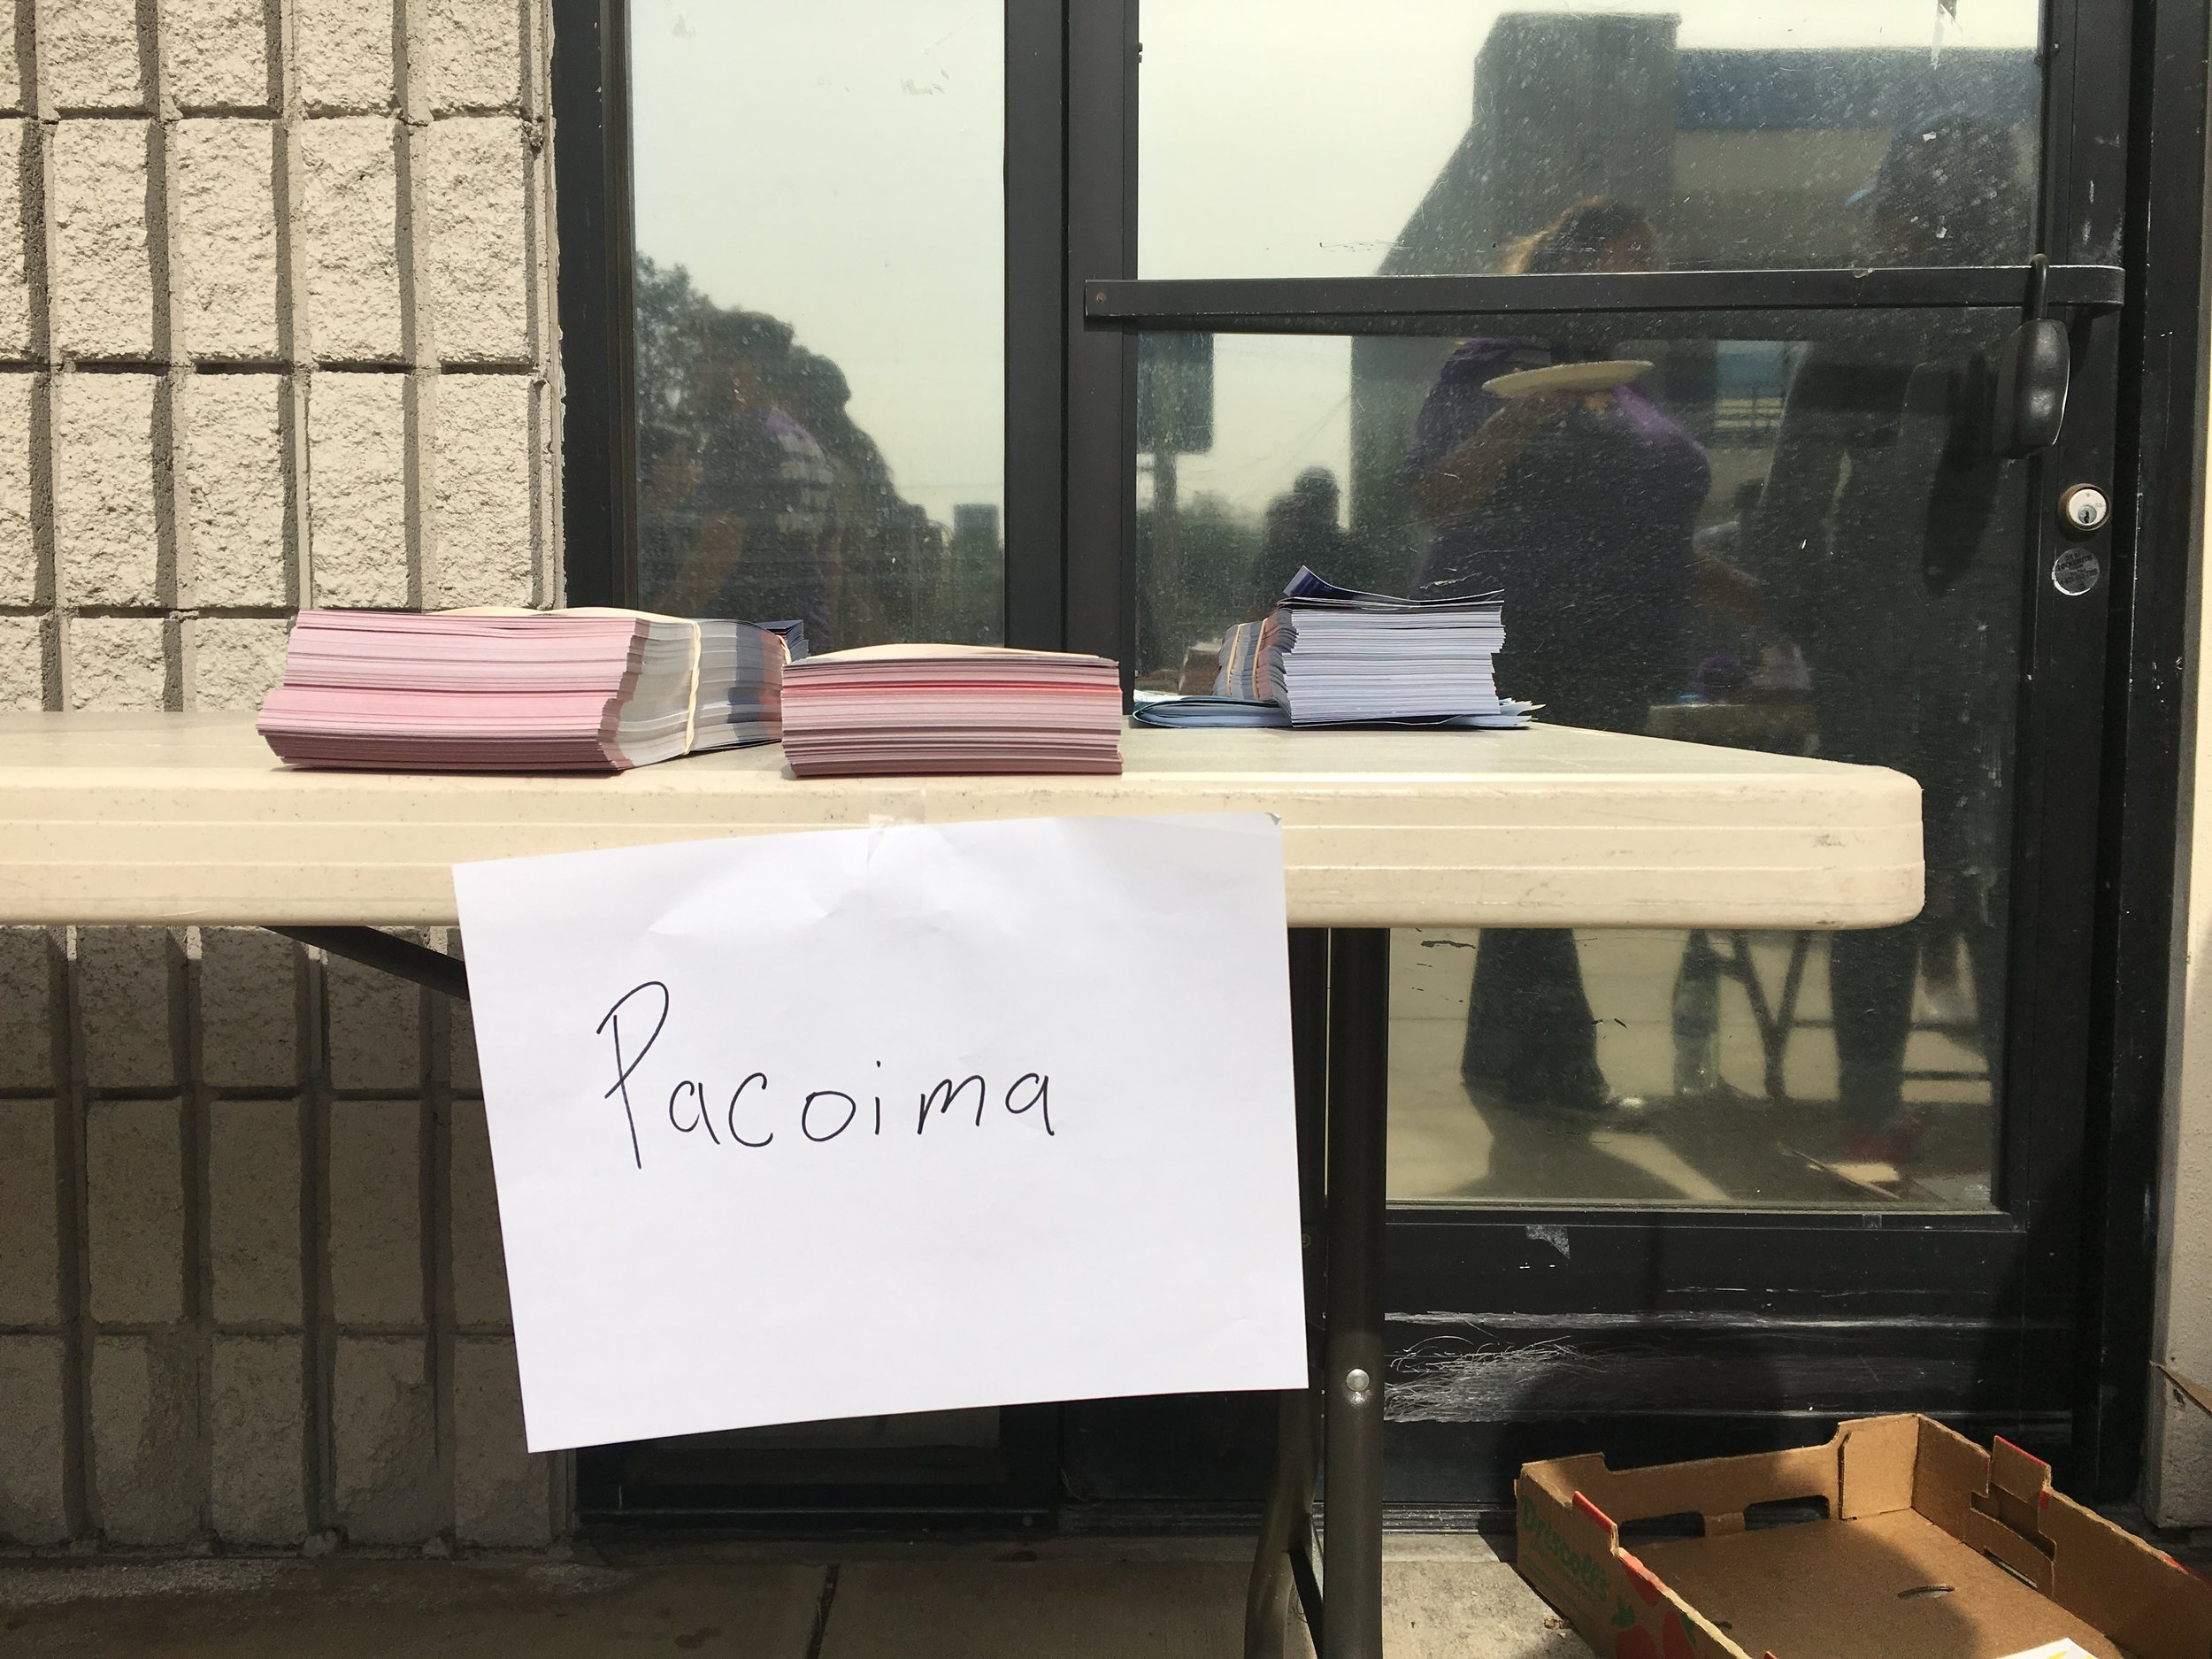 Volunteers gathered in Pacoima for their final days before the March primary.